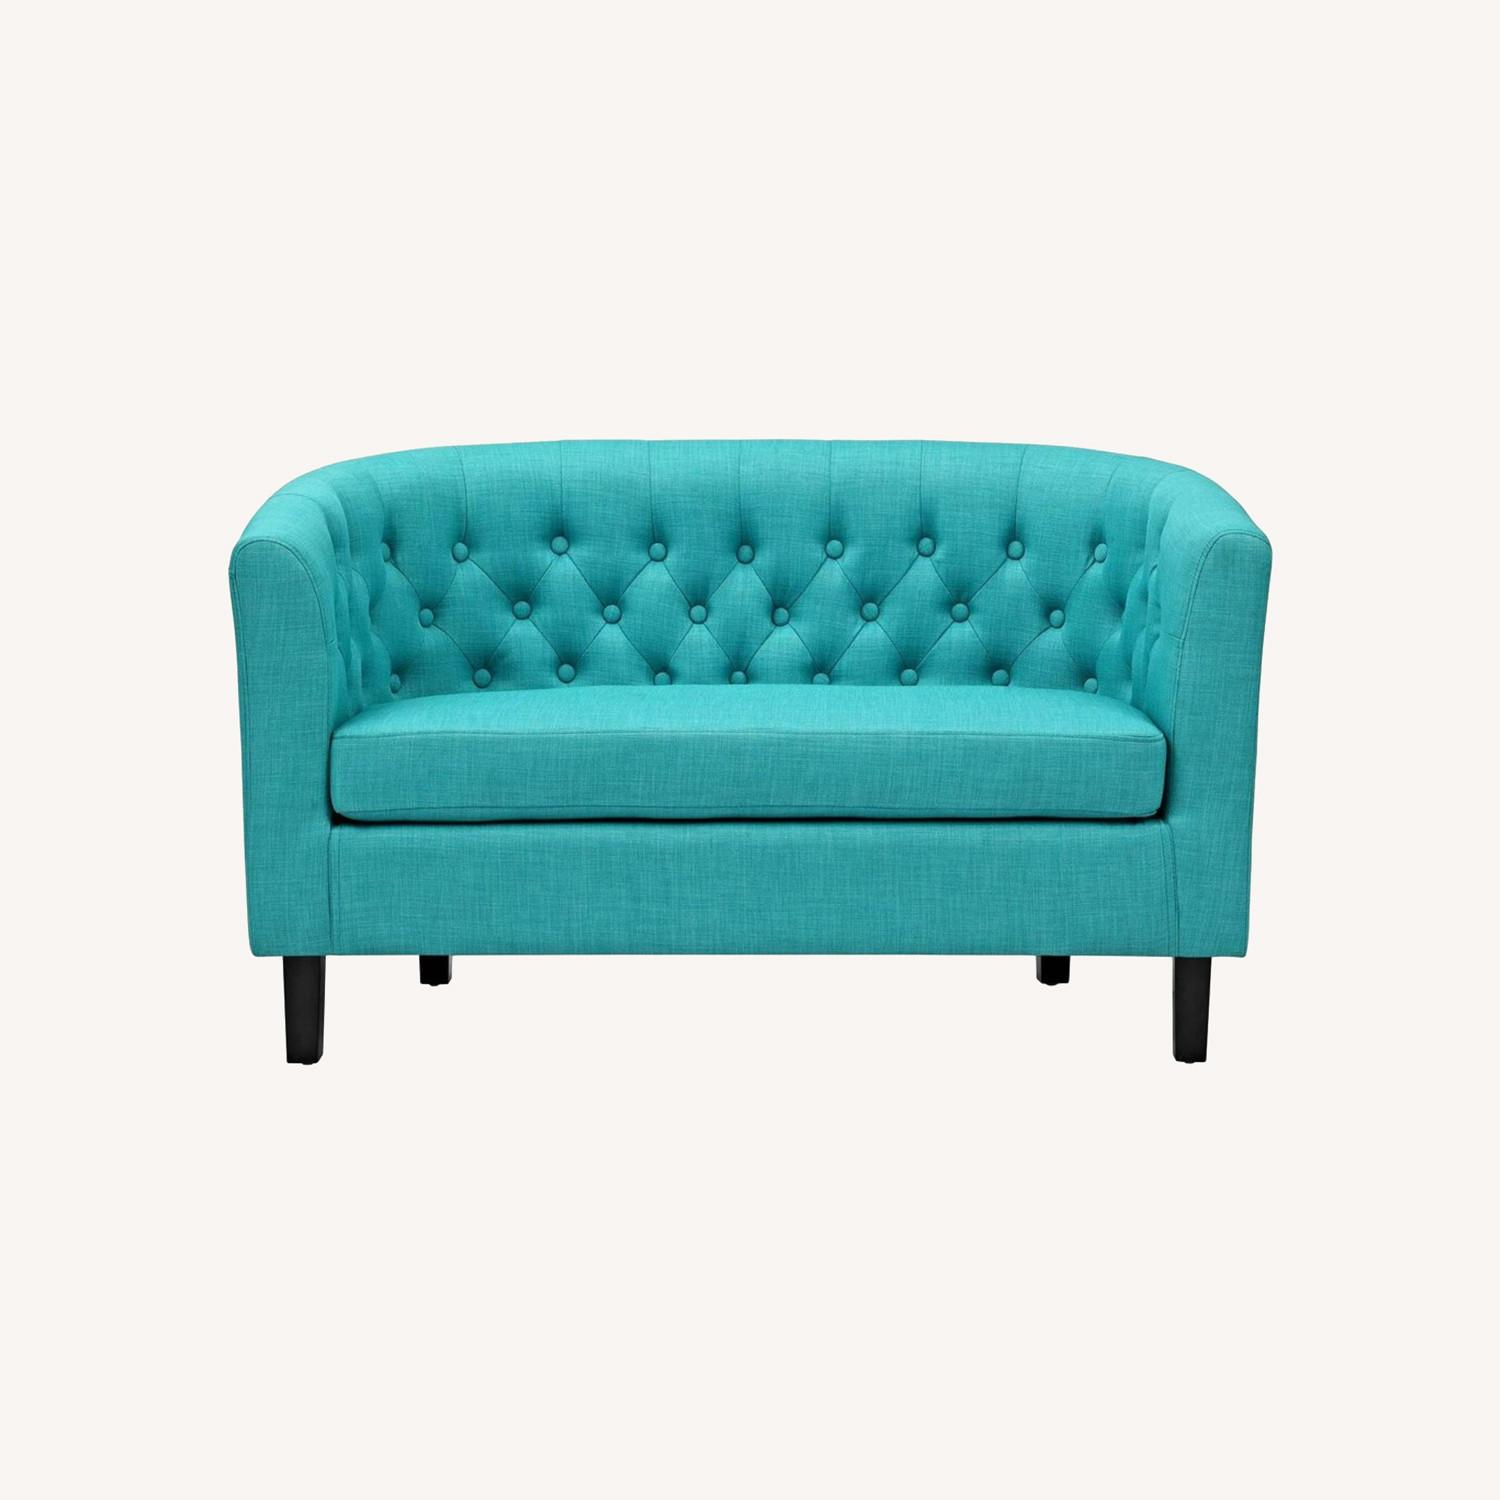 Modern Loveseat In Pure Water Fabric Upholstery - image-5